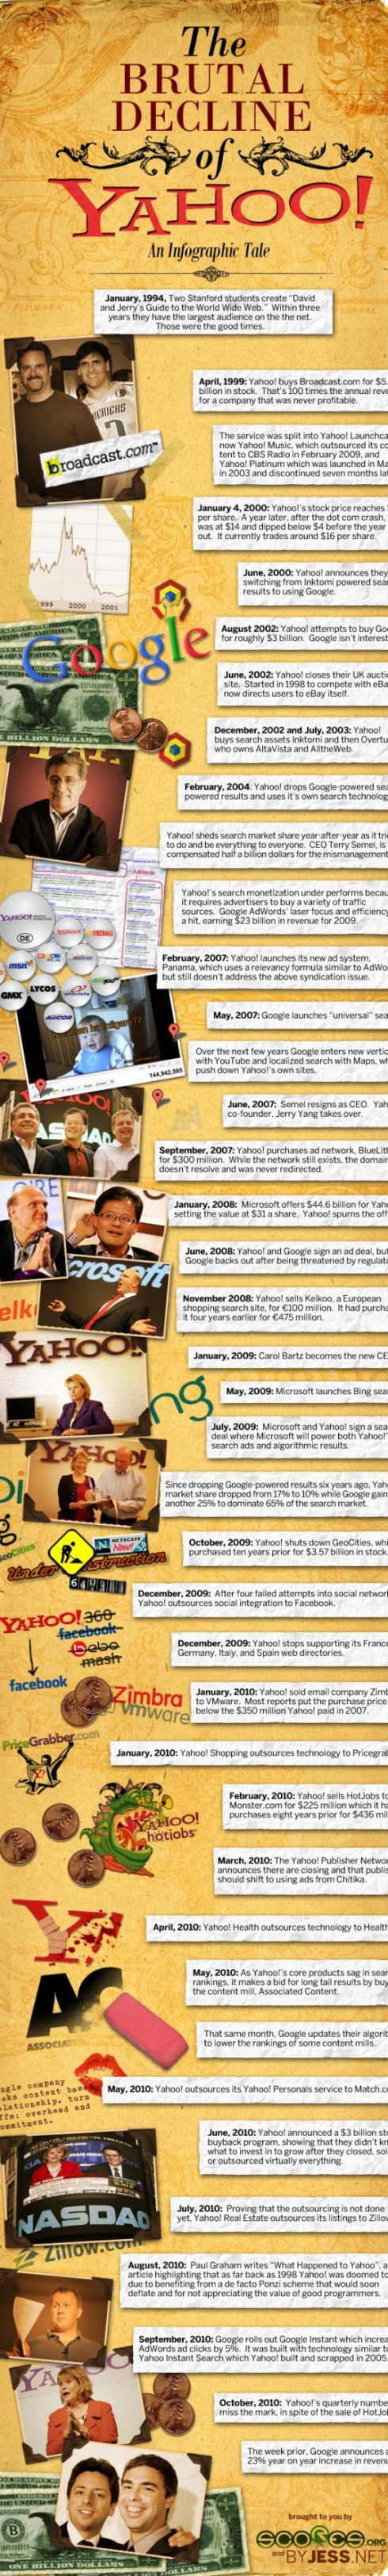 The Brutal Decline of Yahoo!